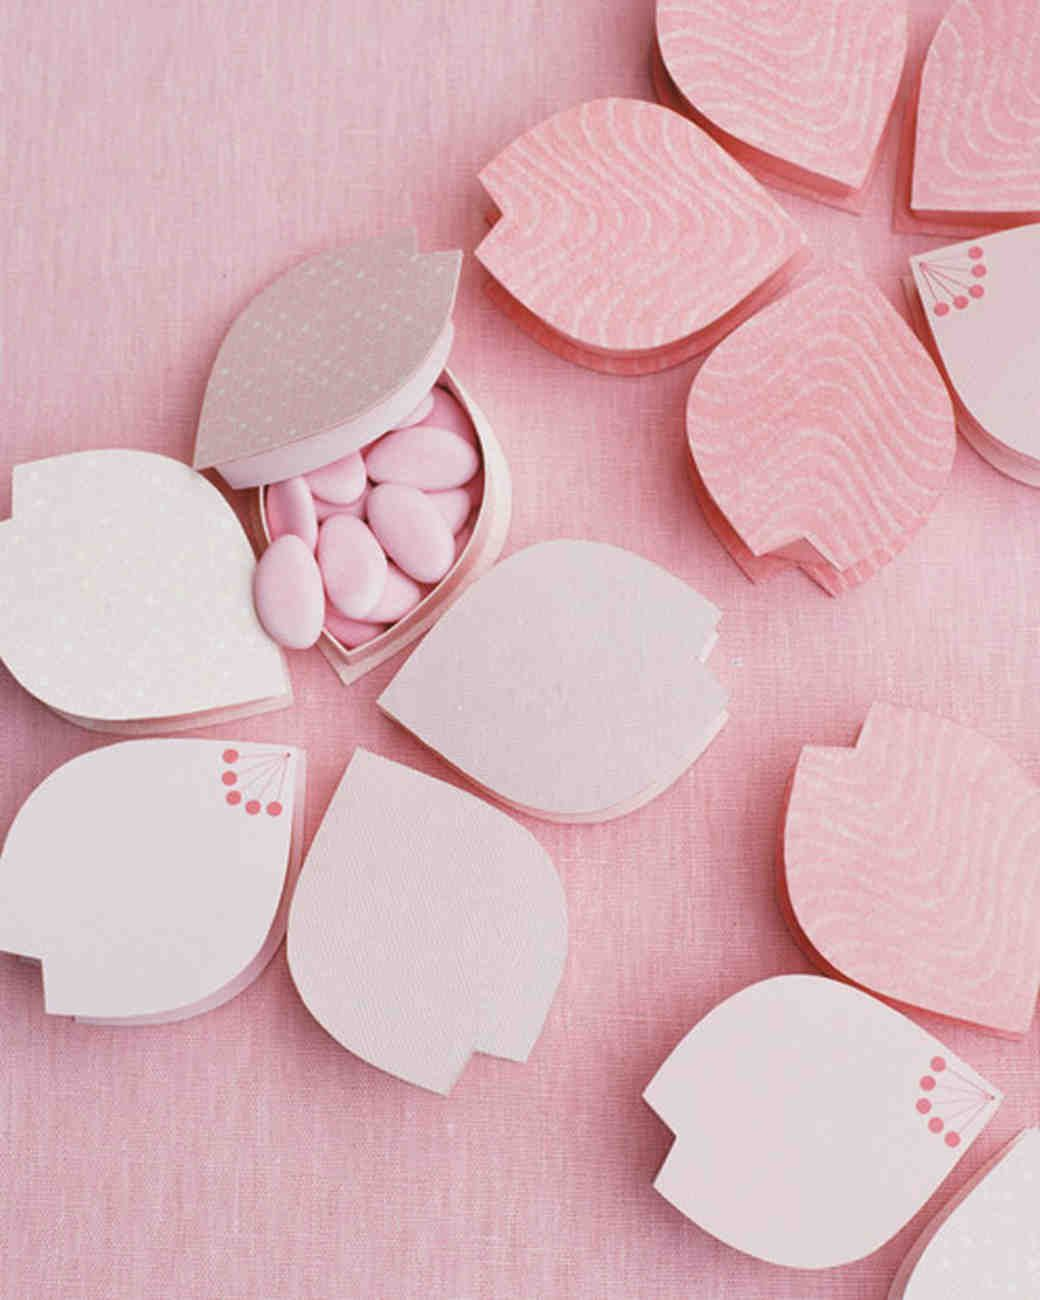 Cherry Blossom-Inspired Wedding Ideas | Wedding Favors & Table Top ...